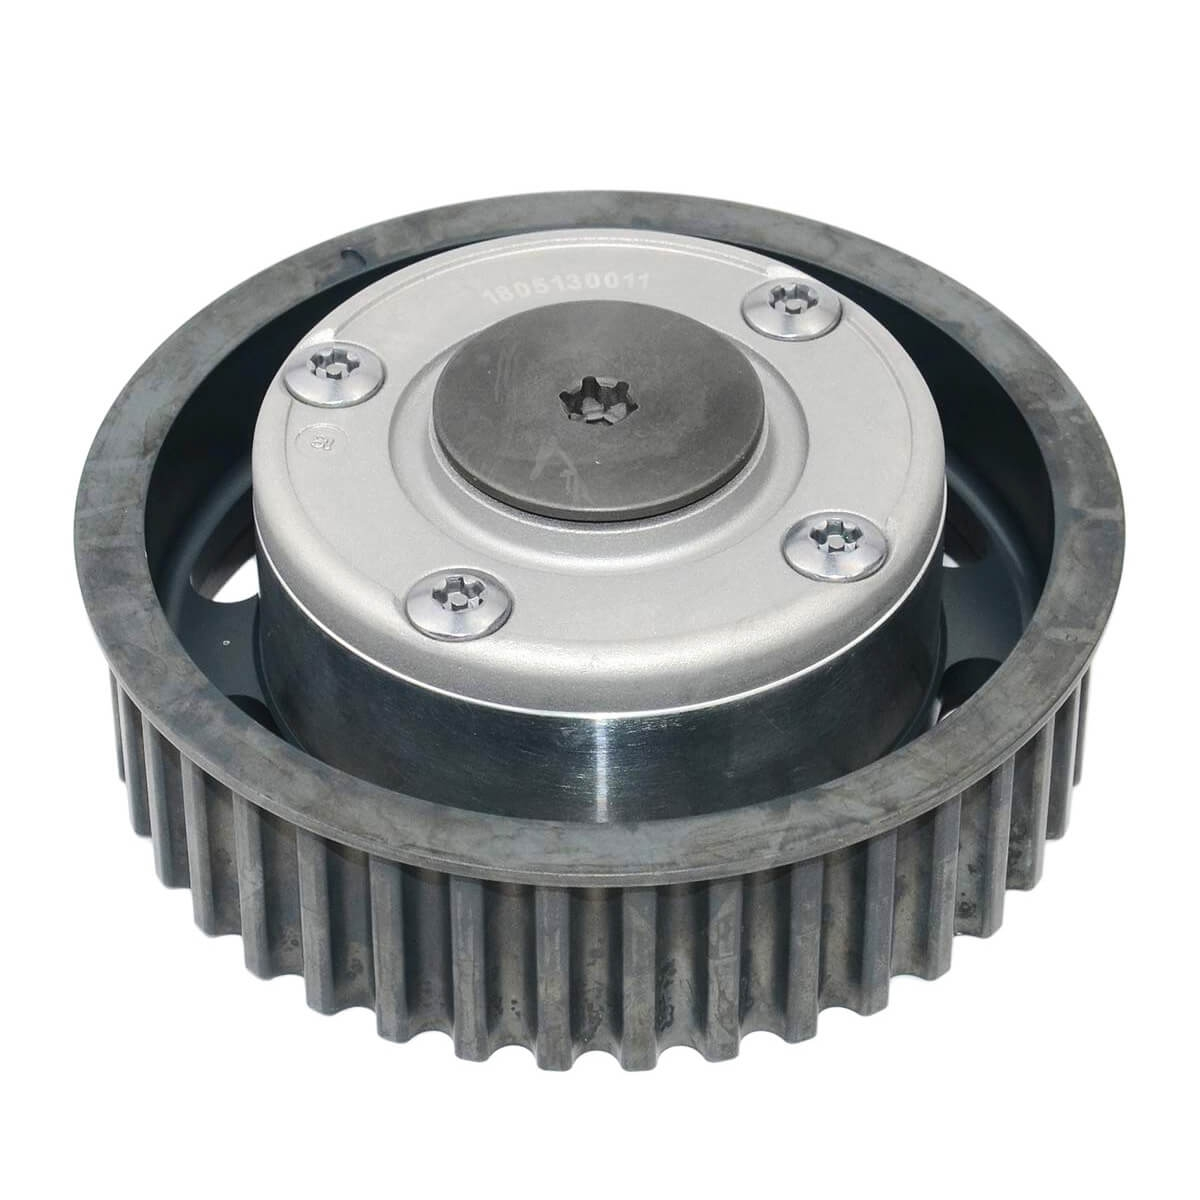 BMW 1500-2000 Cam Dephaser Pulley